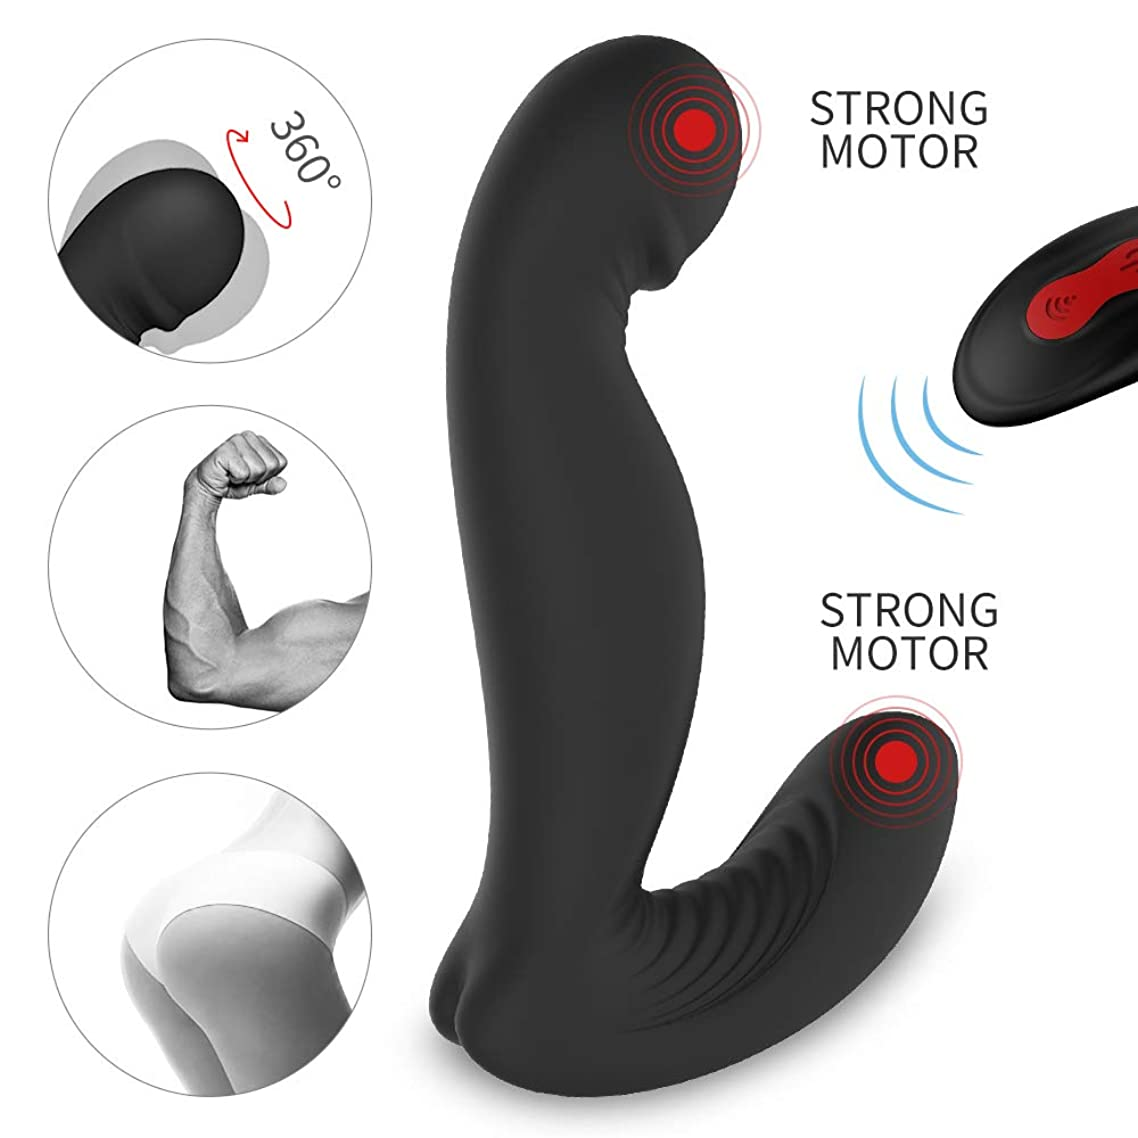 yishunmaoyi Personal Cordless Handheld Wand Massager,Powerful Quiet Magic Rechargeable Wireless Waterproof Vibrating Massager-Mini for Therapeutic Foot Scalp Back Waist Neck Muscle Aches Toy Gifts